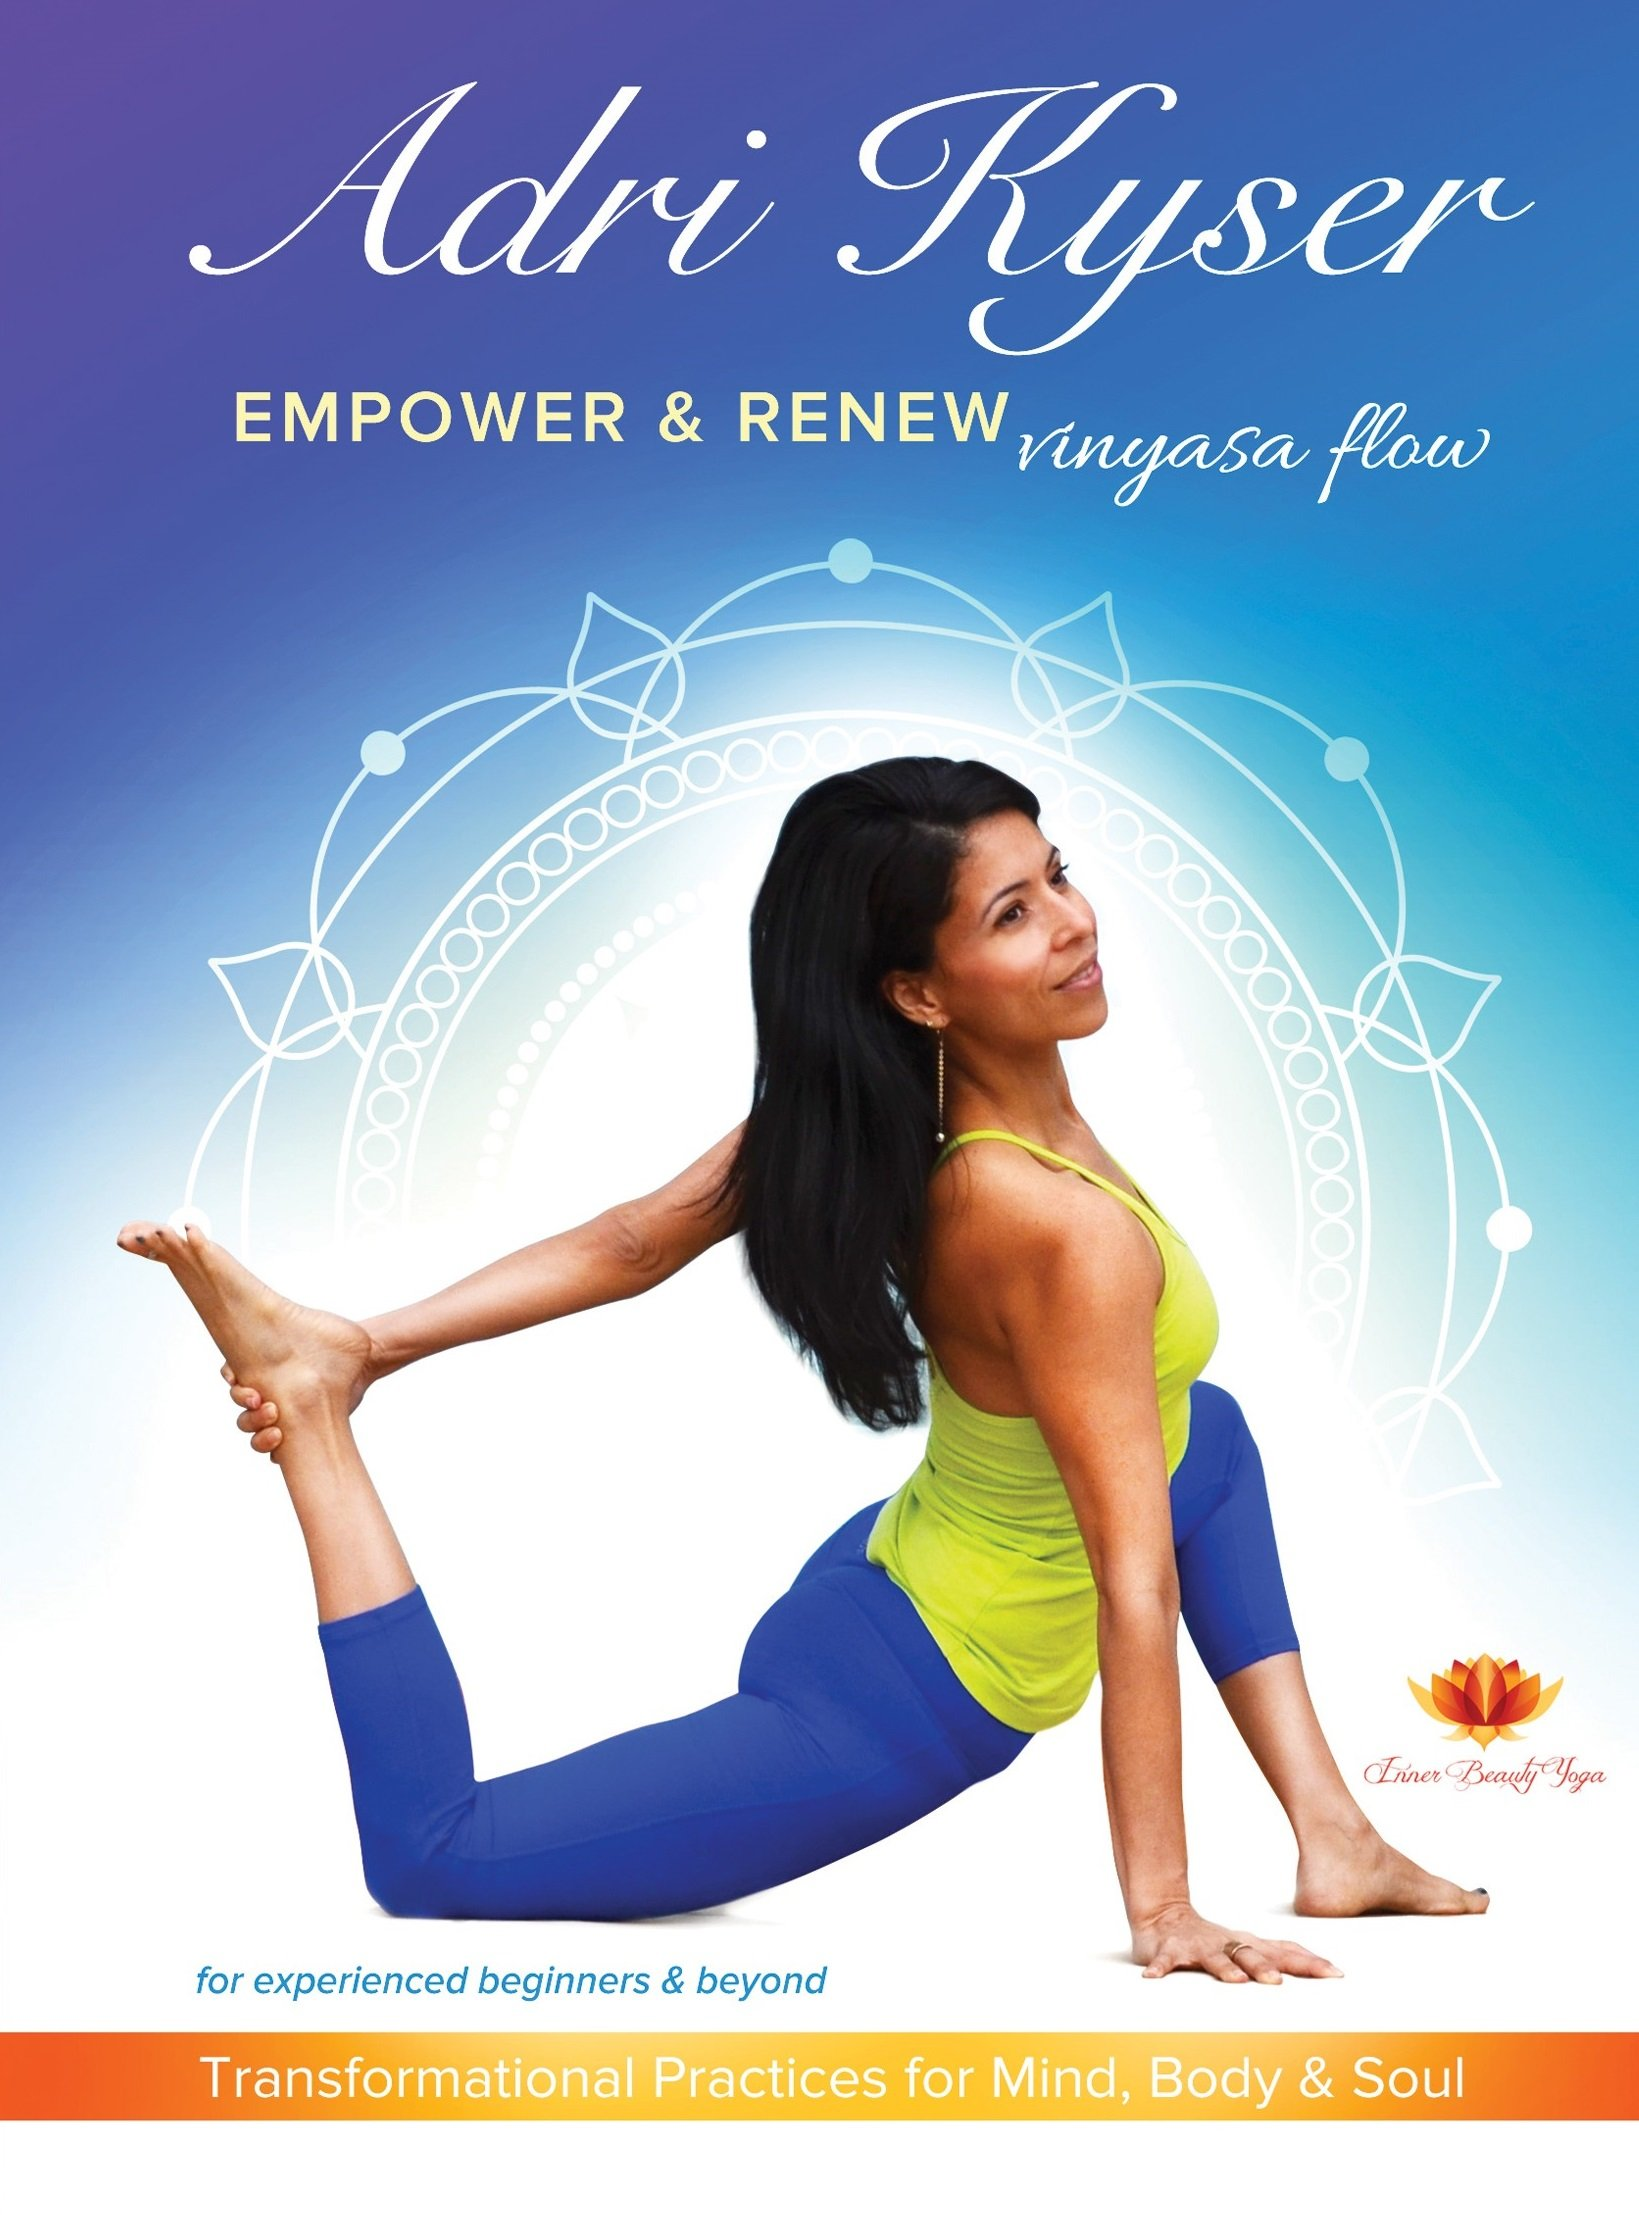 Empower & Renew Vinyasa Flow DVD by Adri Kyser (Image #1)